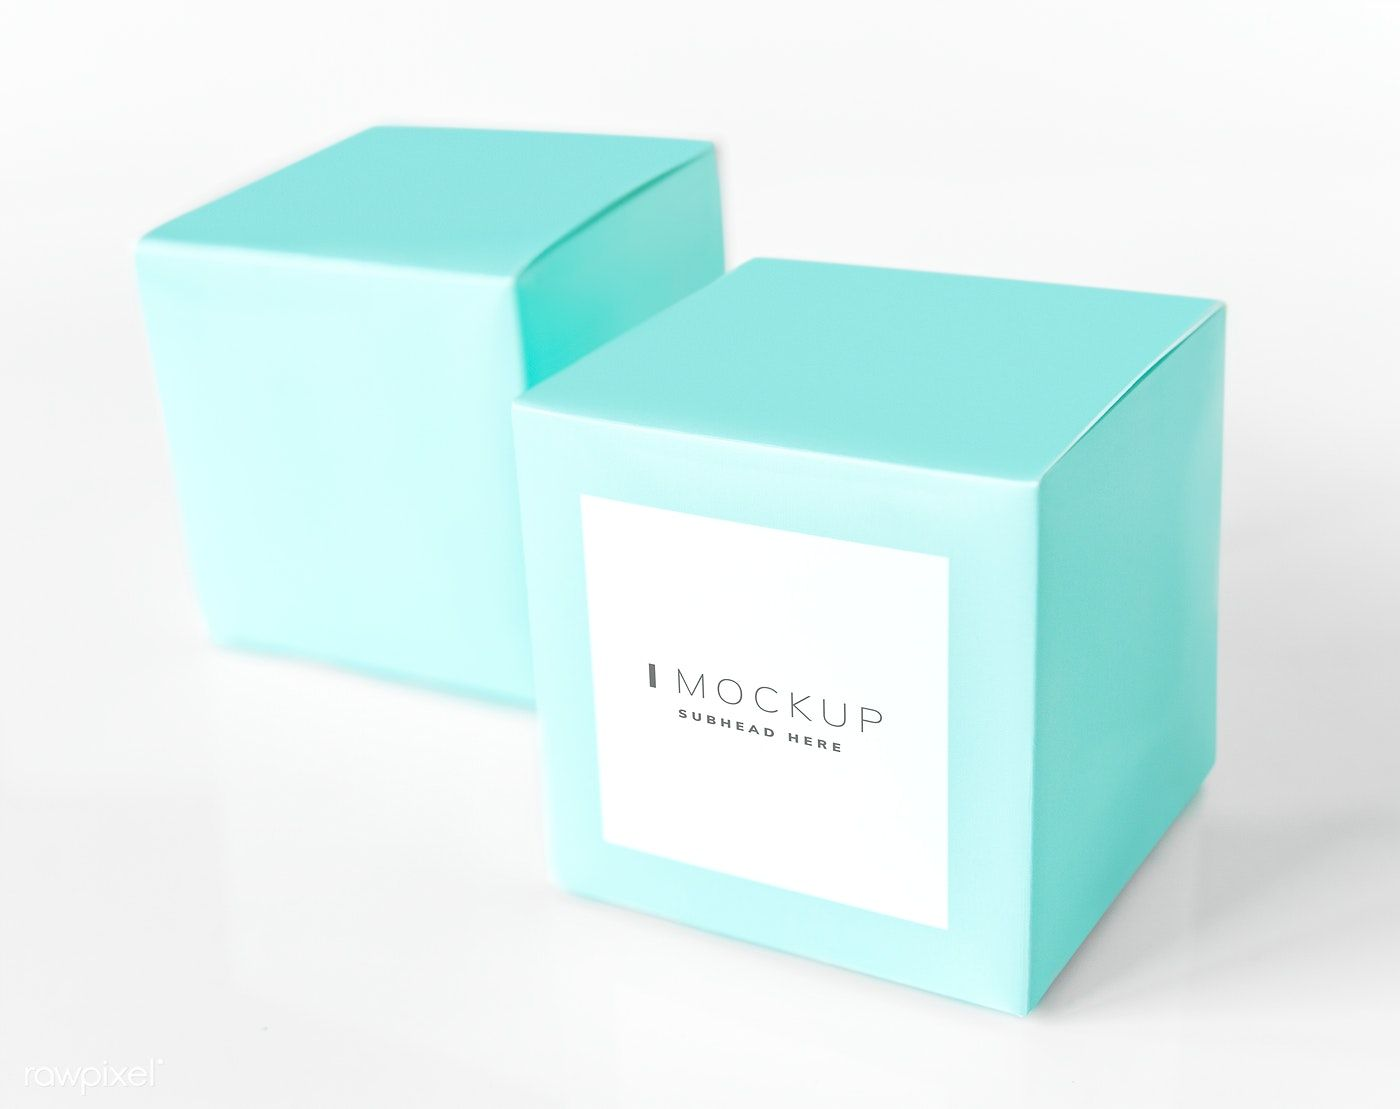 Download Download Premium Psd Of Mint Green Packaging Box Mockup 531759 Box Mockup Box Packaging Packaging